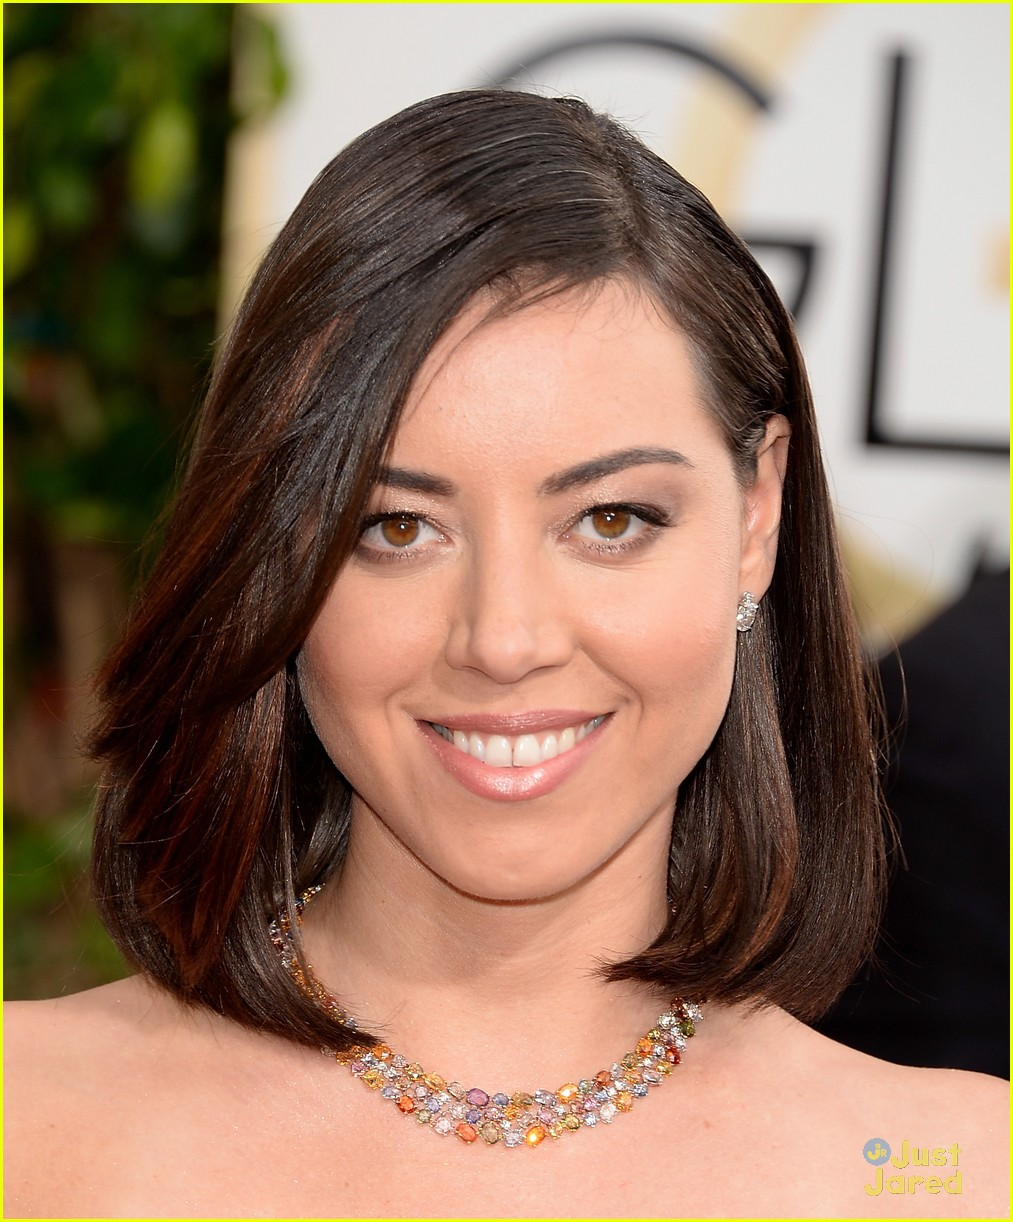 Aubrey Plaza - Golden Globes 2014: Red carpet - Pictures ...